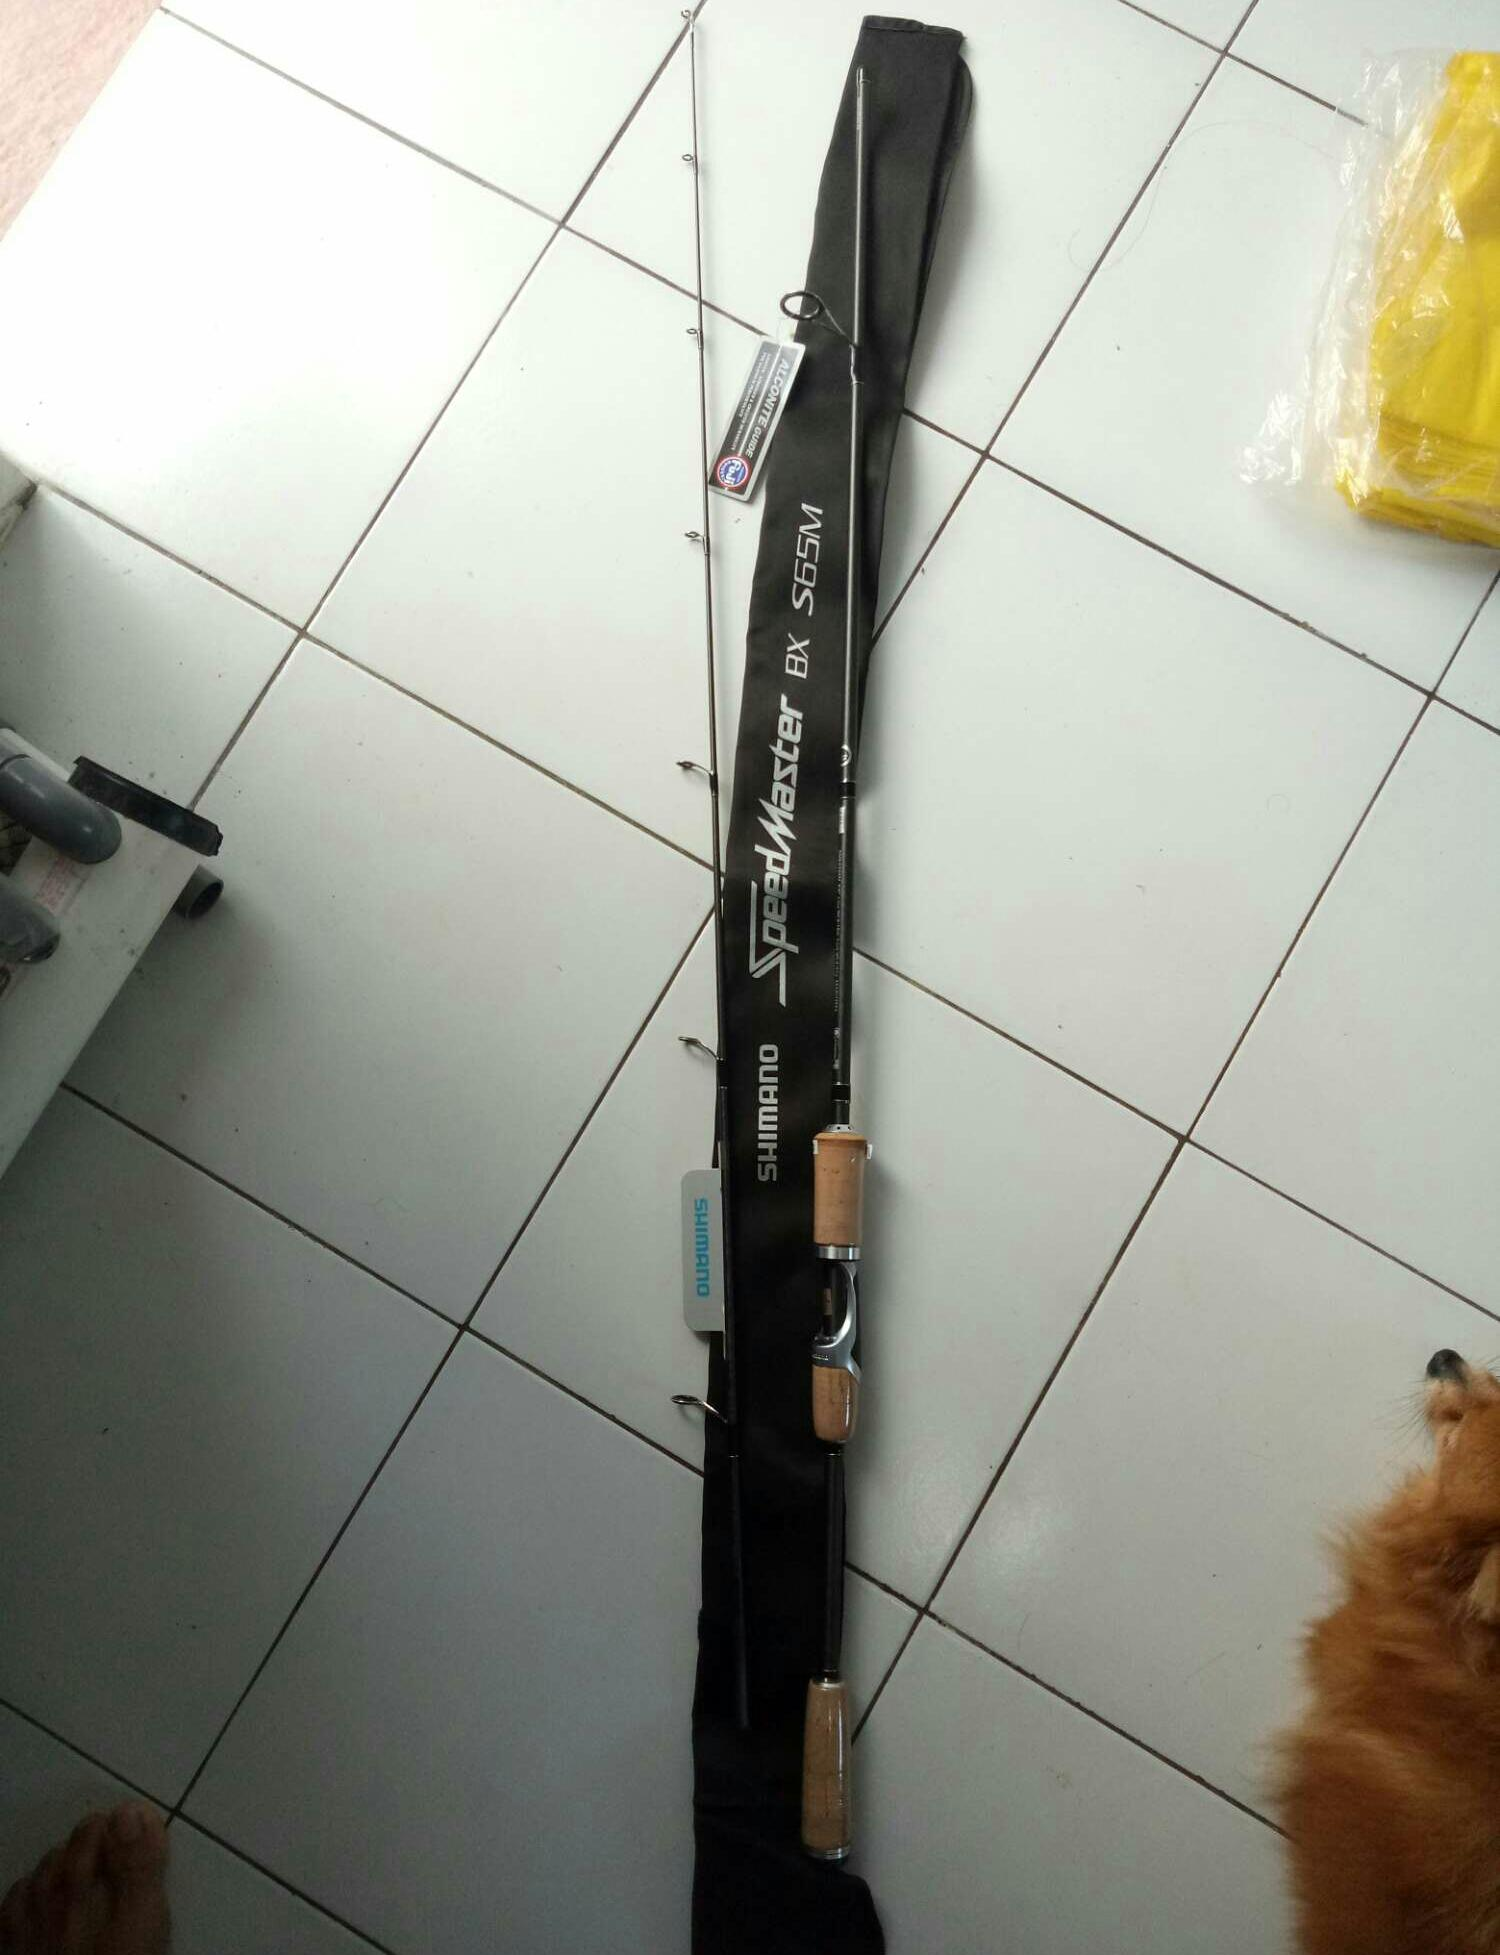 Rod shimano speed master bx s6'6